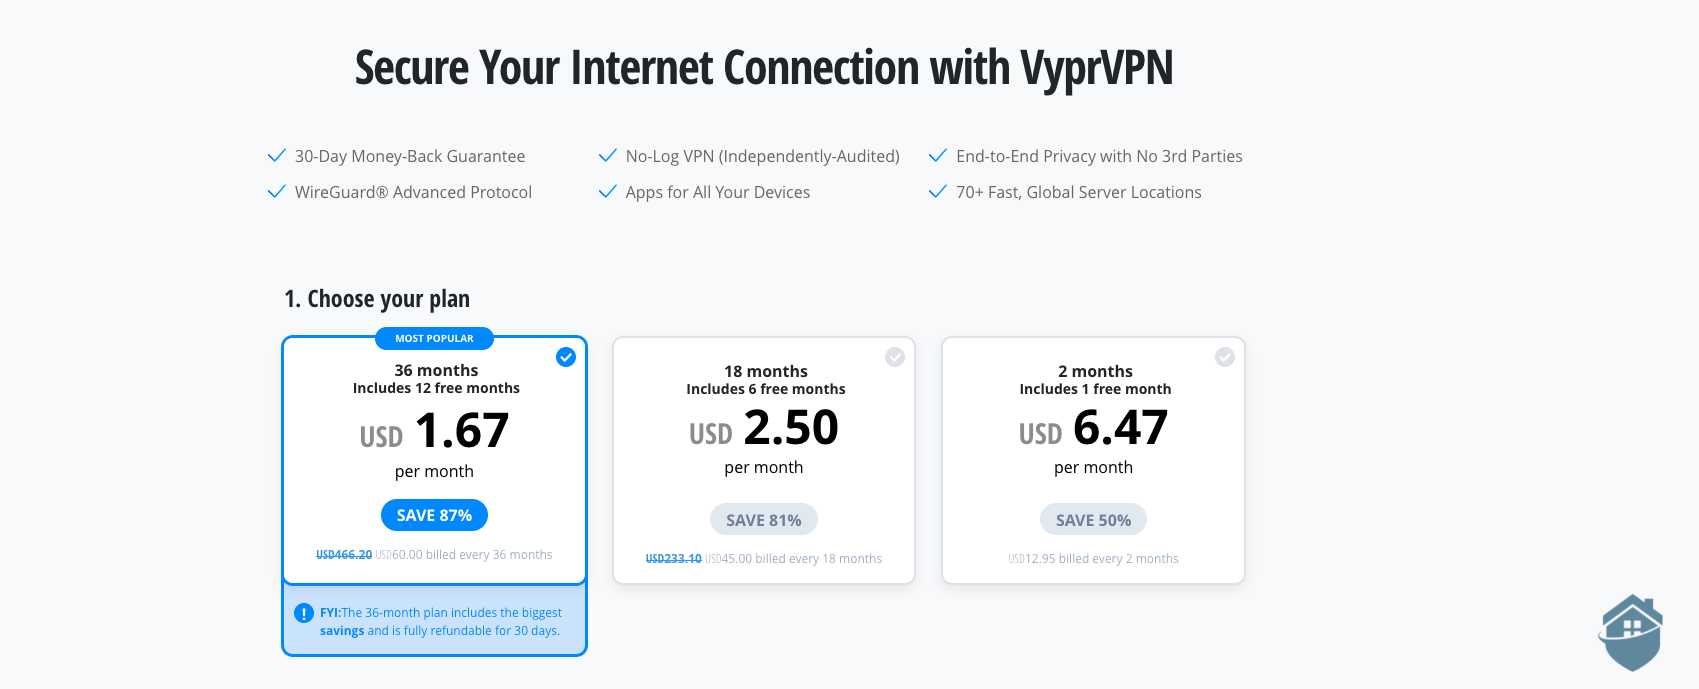 VyprVPN Pricing table